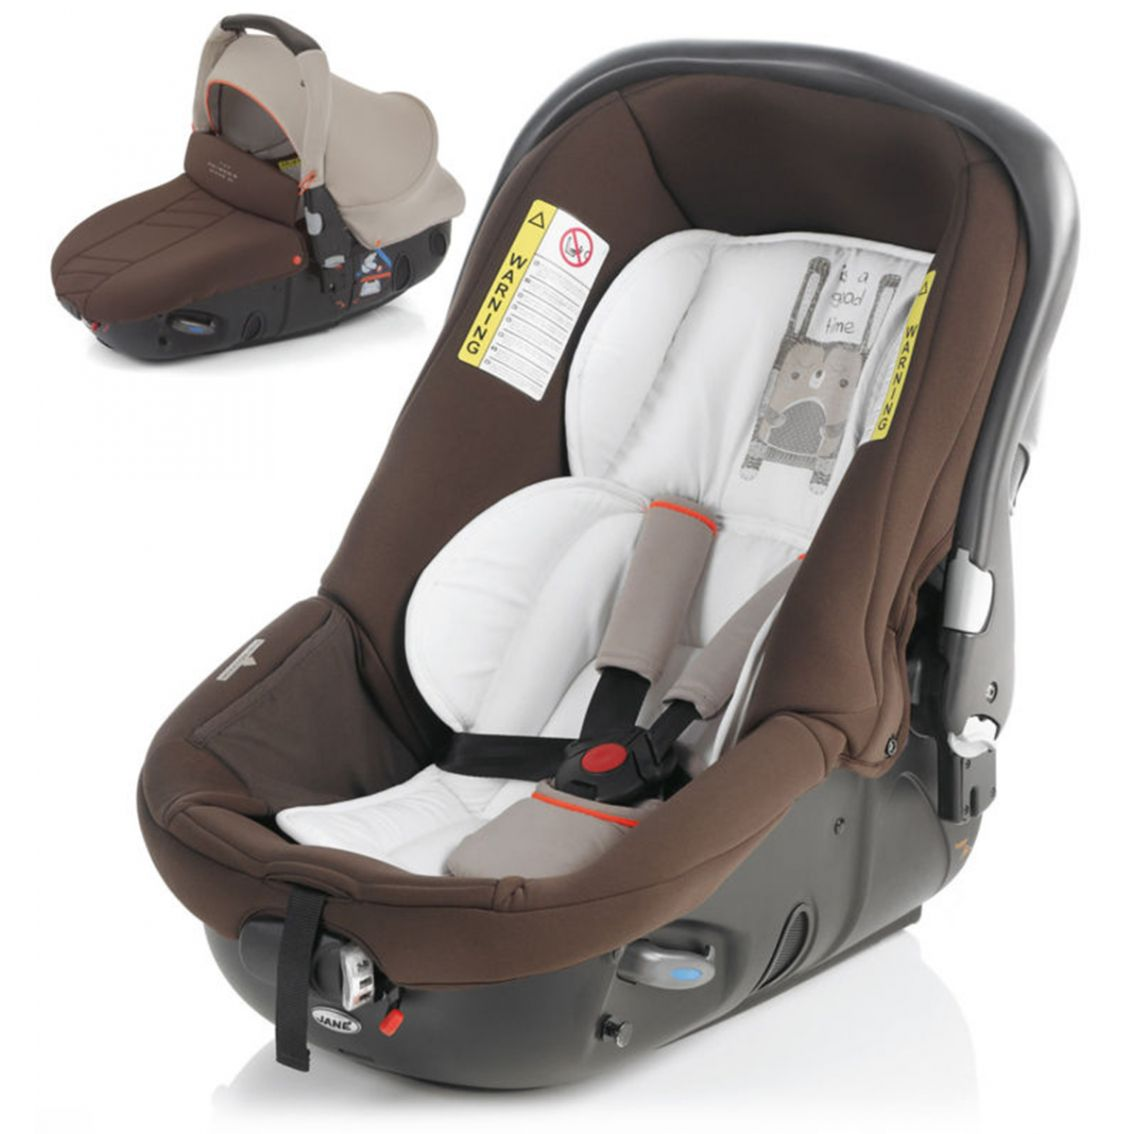 jan jane matrix light 2 car seat boheme jan from w h. Black Bedroom Furniture Sets. Home Design Ideas